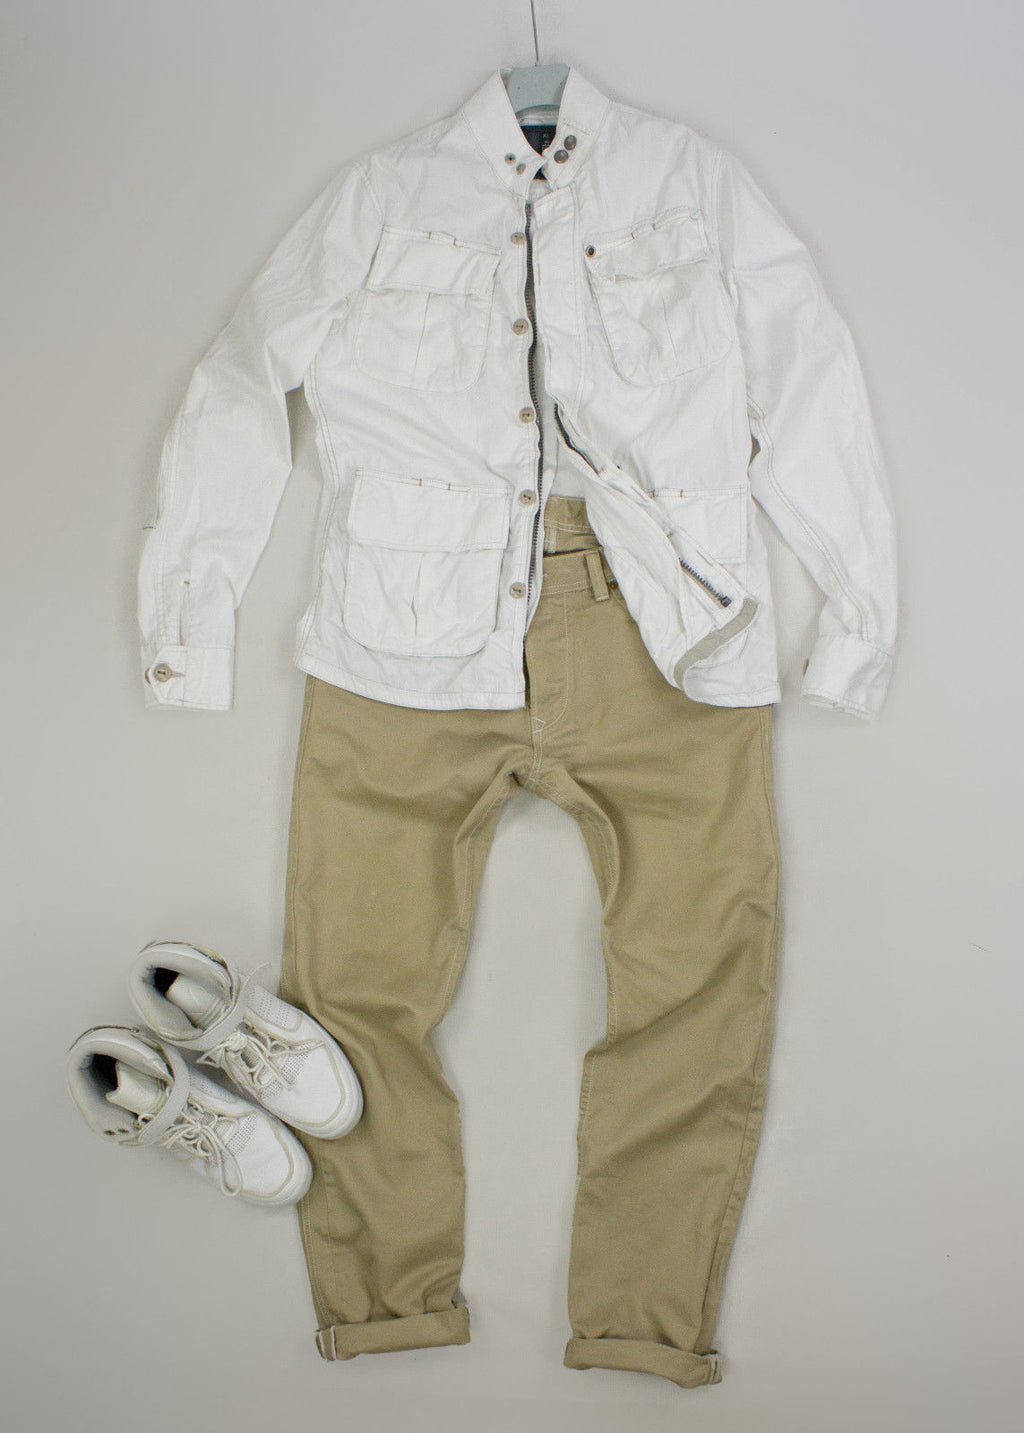 G-STAR RAW Navigator Delta Shirt White Jacket, L - secondfirst